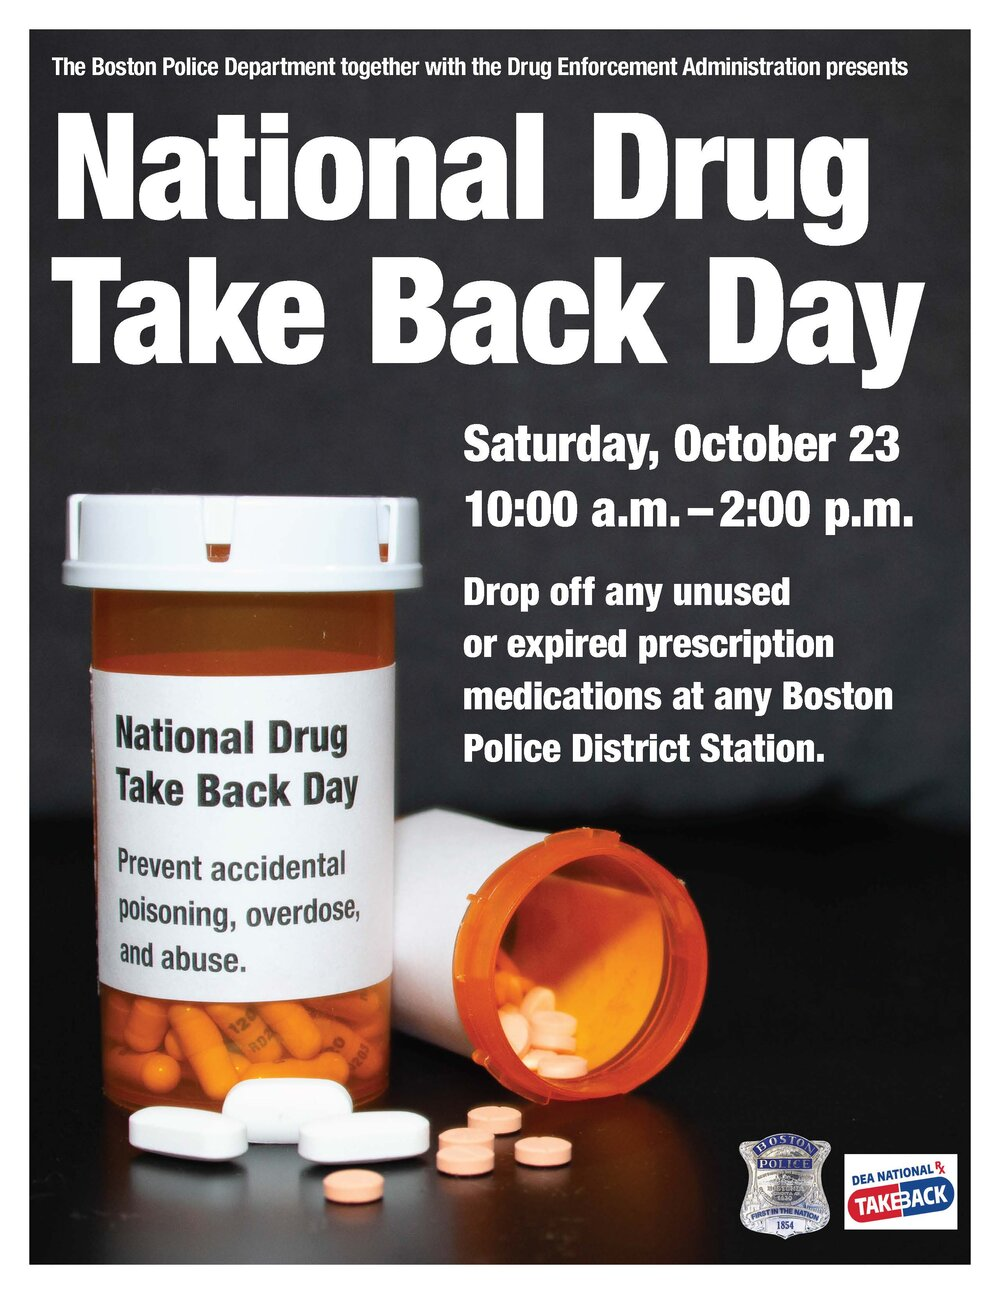 Join the BPD and DEA for National Drug Take Back Day on Saturday, October 23, 2021